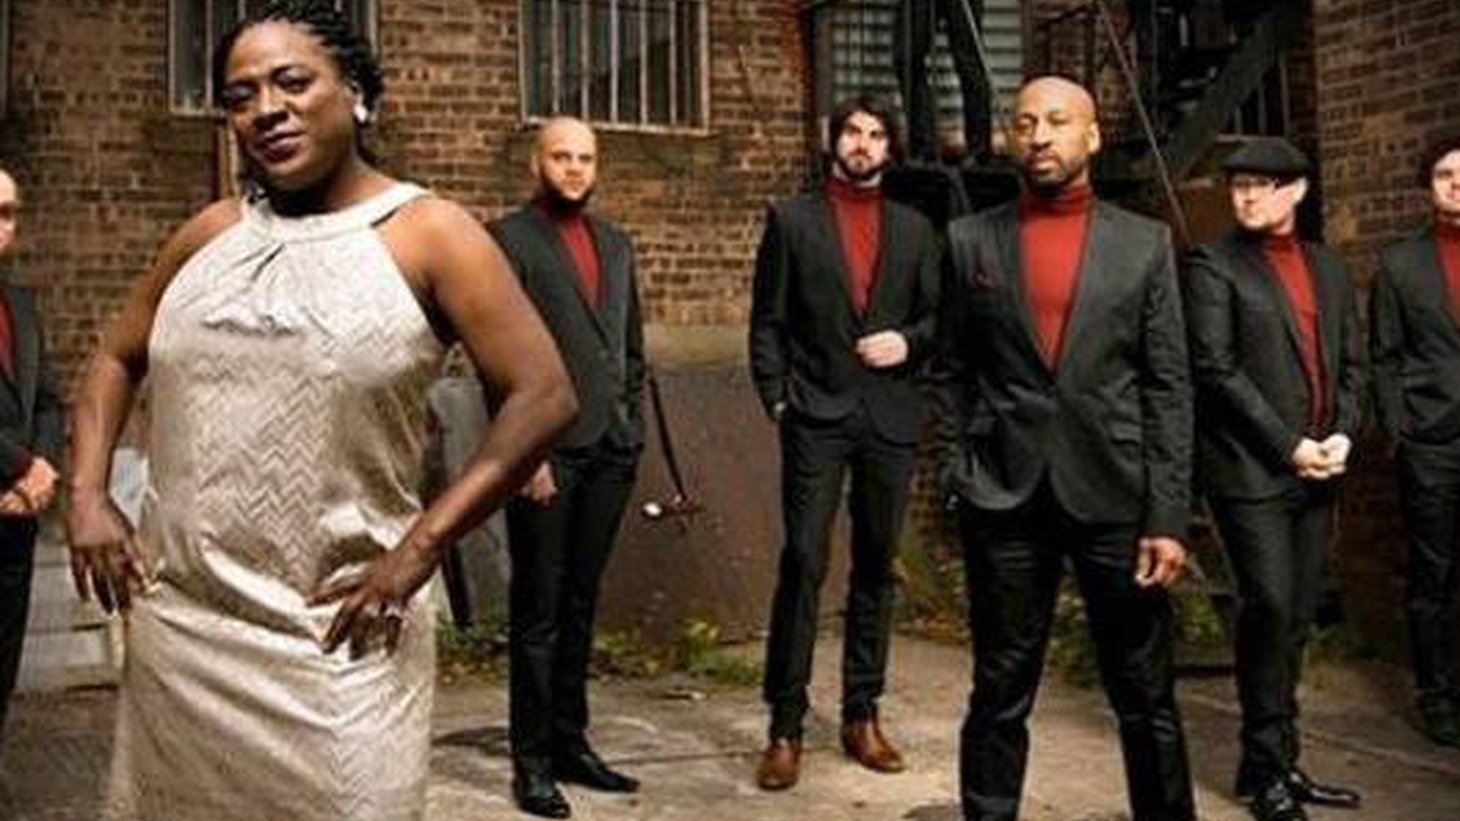 What better way to celebrate Christmas Eve than a soulful Today's Top Tune courtesy of Sharon Jones & The Dap-Kings.